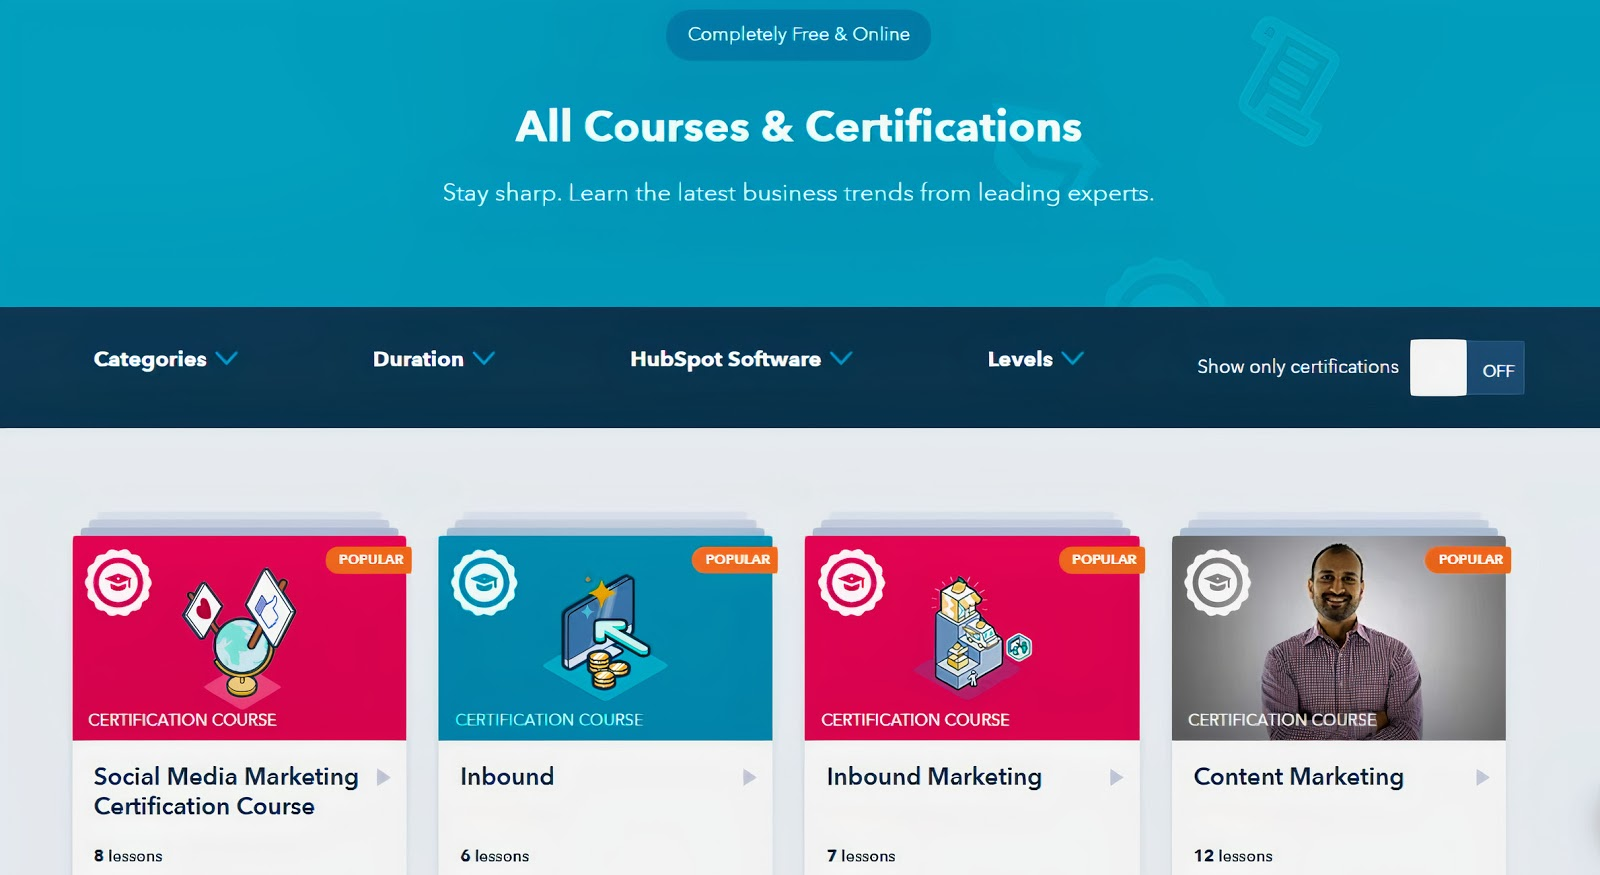 A webpage showing all the HubSpot courses you can take